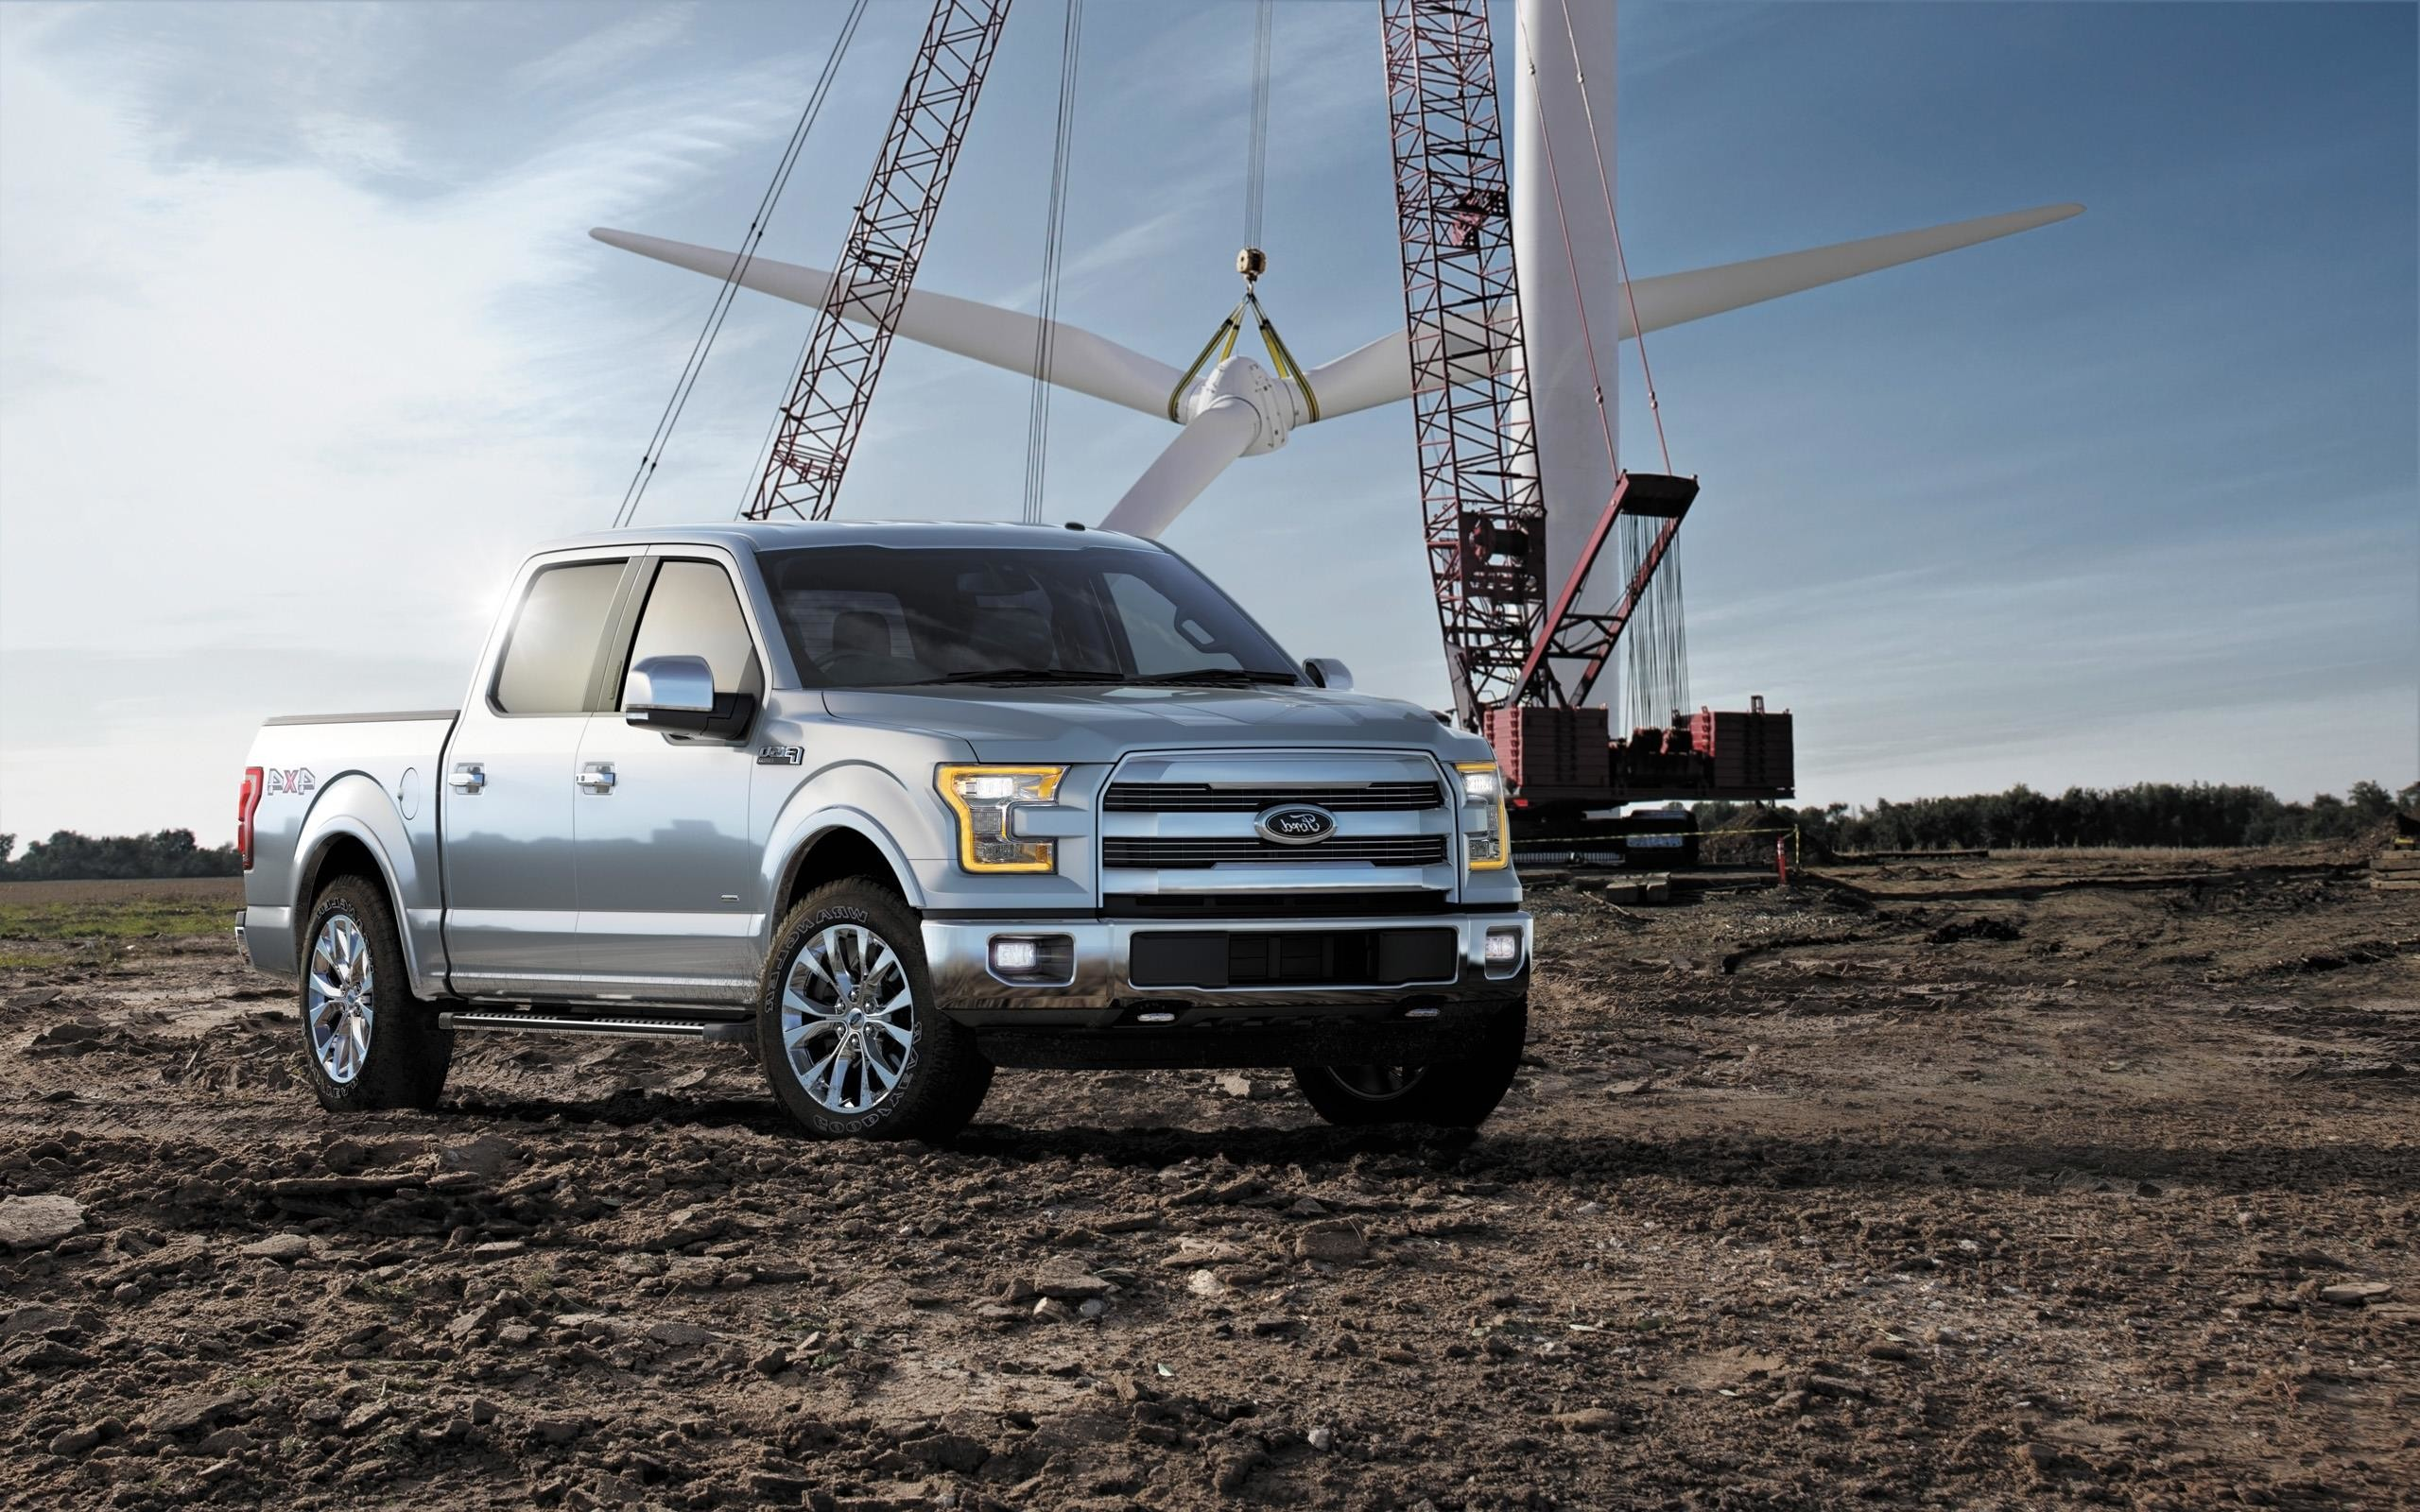 2560x1600 Images Ford F150 Photos Ford F150 HD